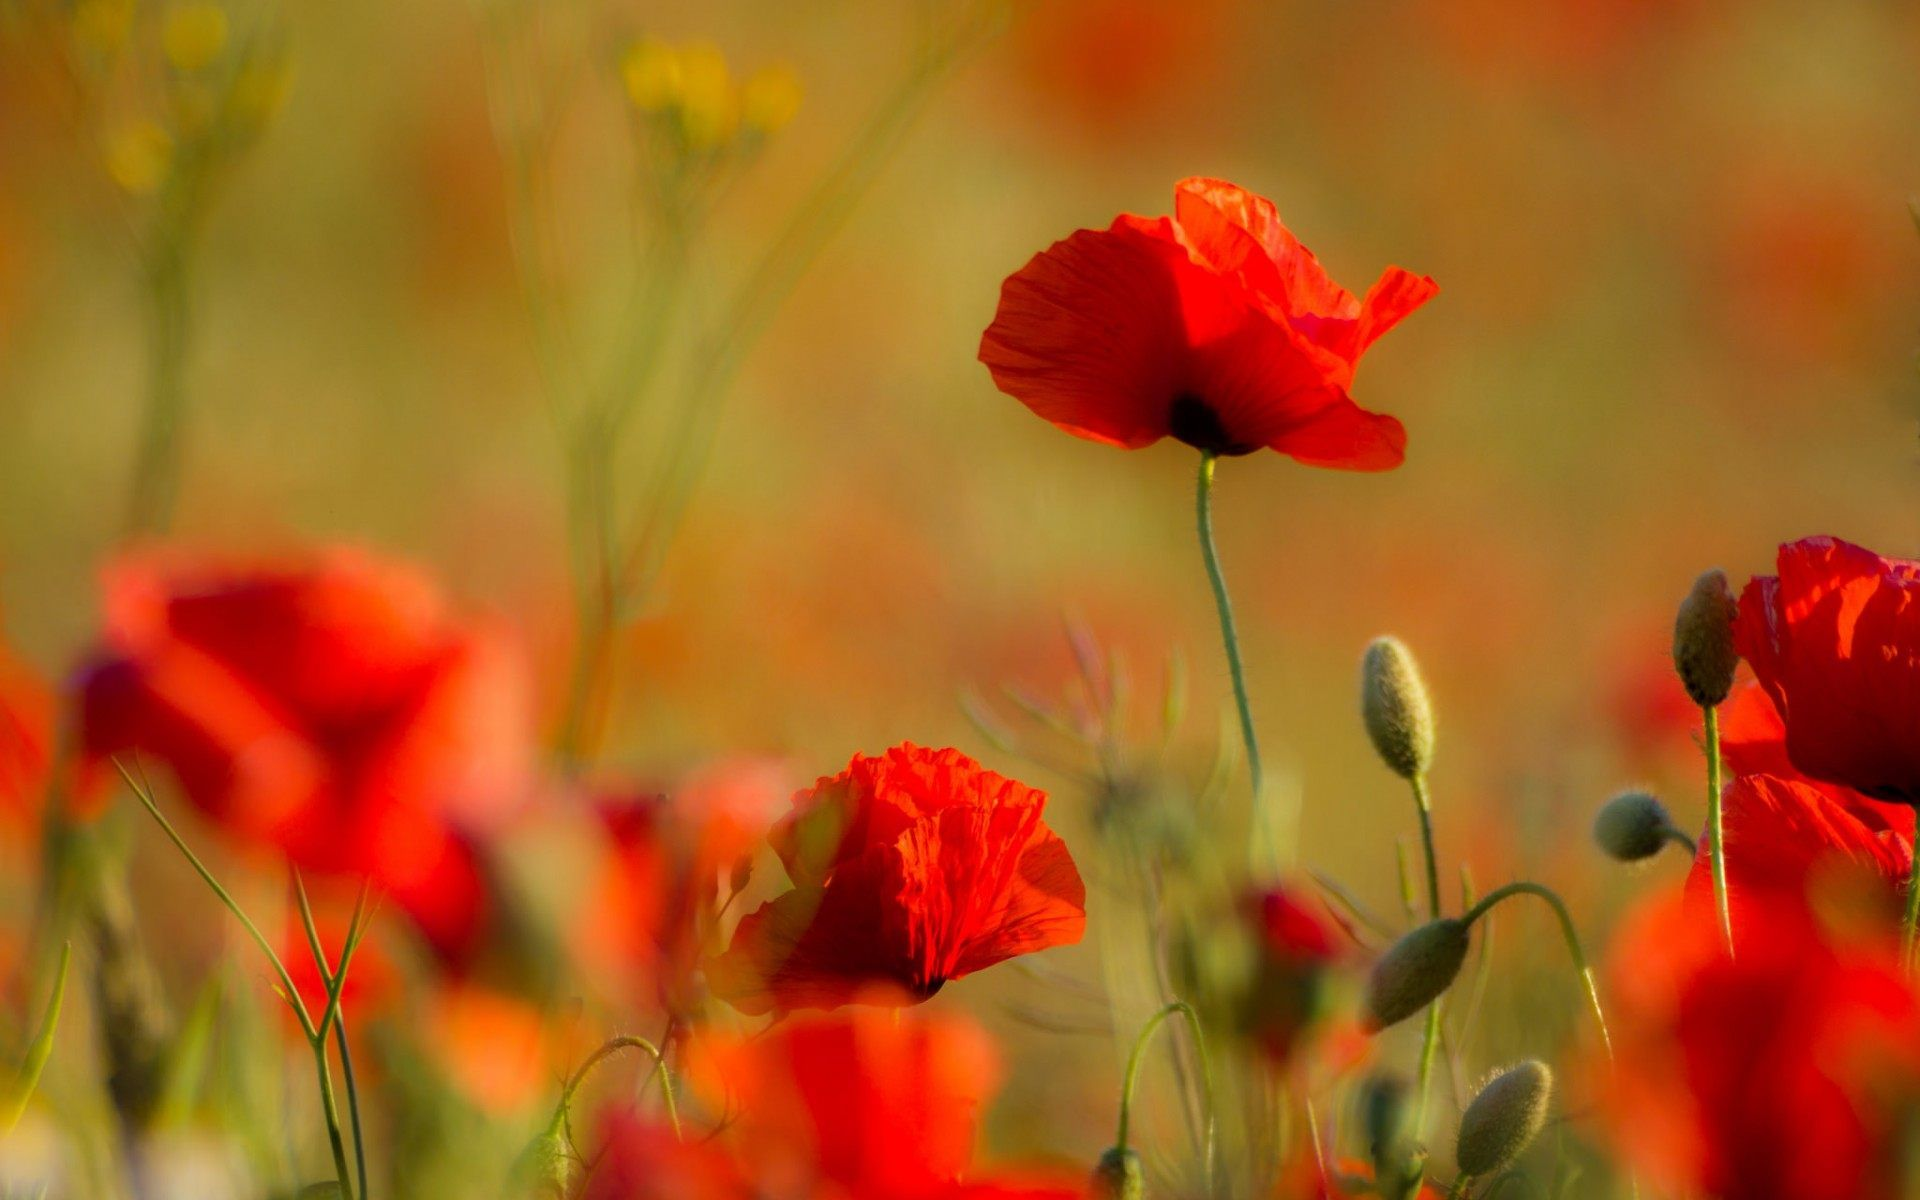 Red Poppy Garden Flower Wallpaper for desktop and mobile in high